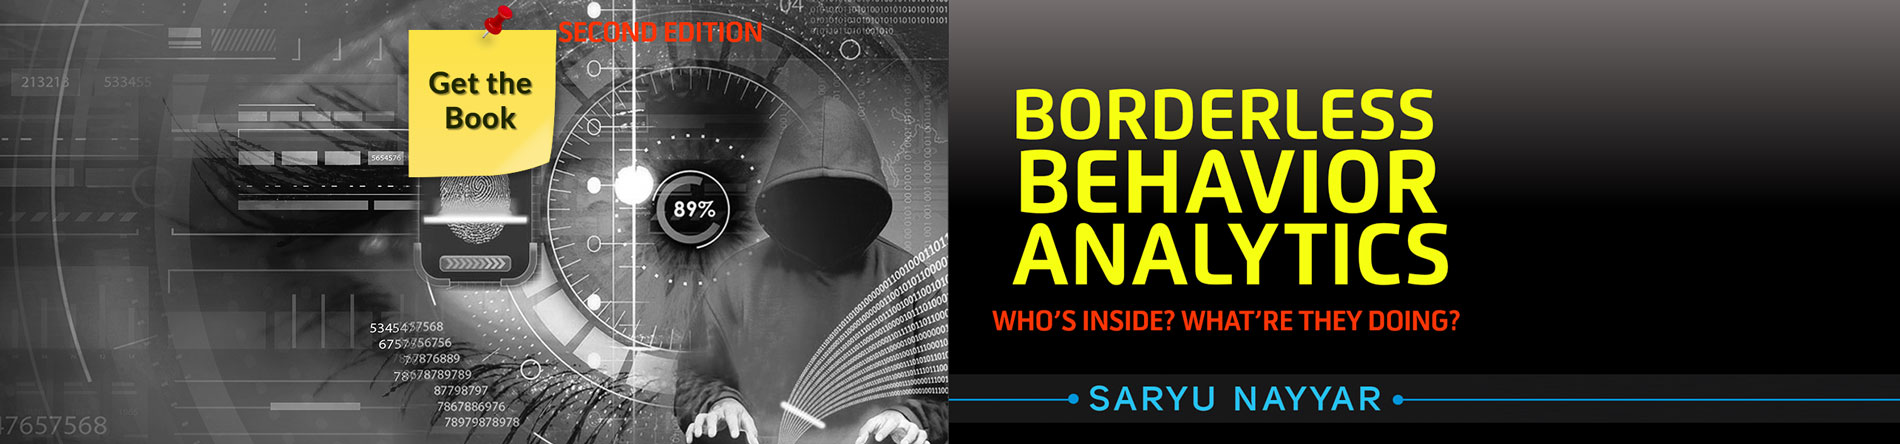 BBA-Slider-borderlessbehavioranalytics-(1900x444)